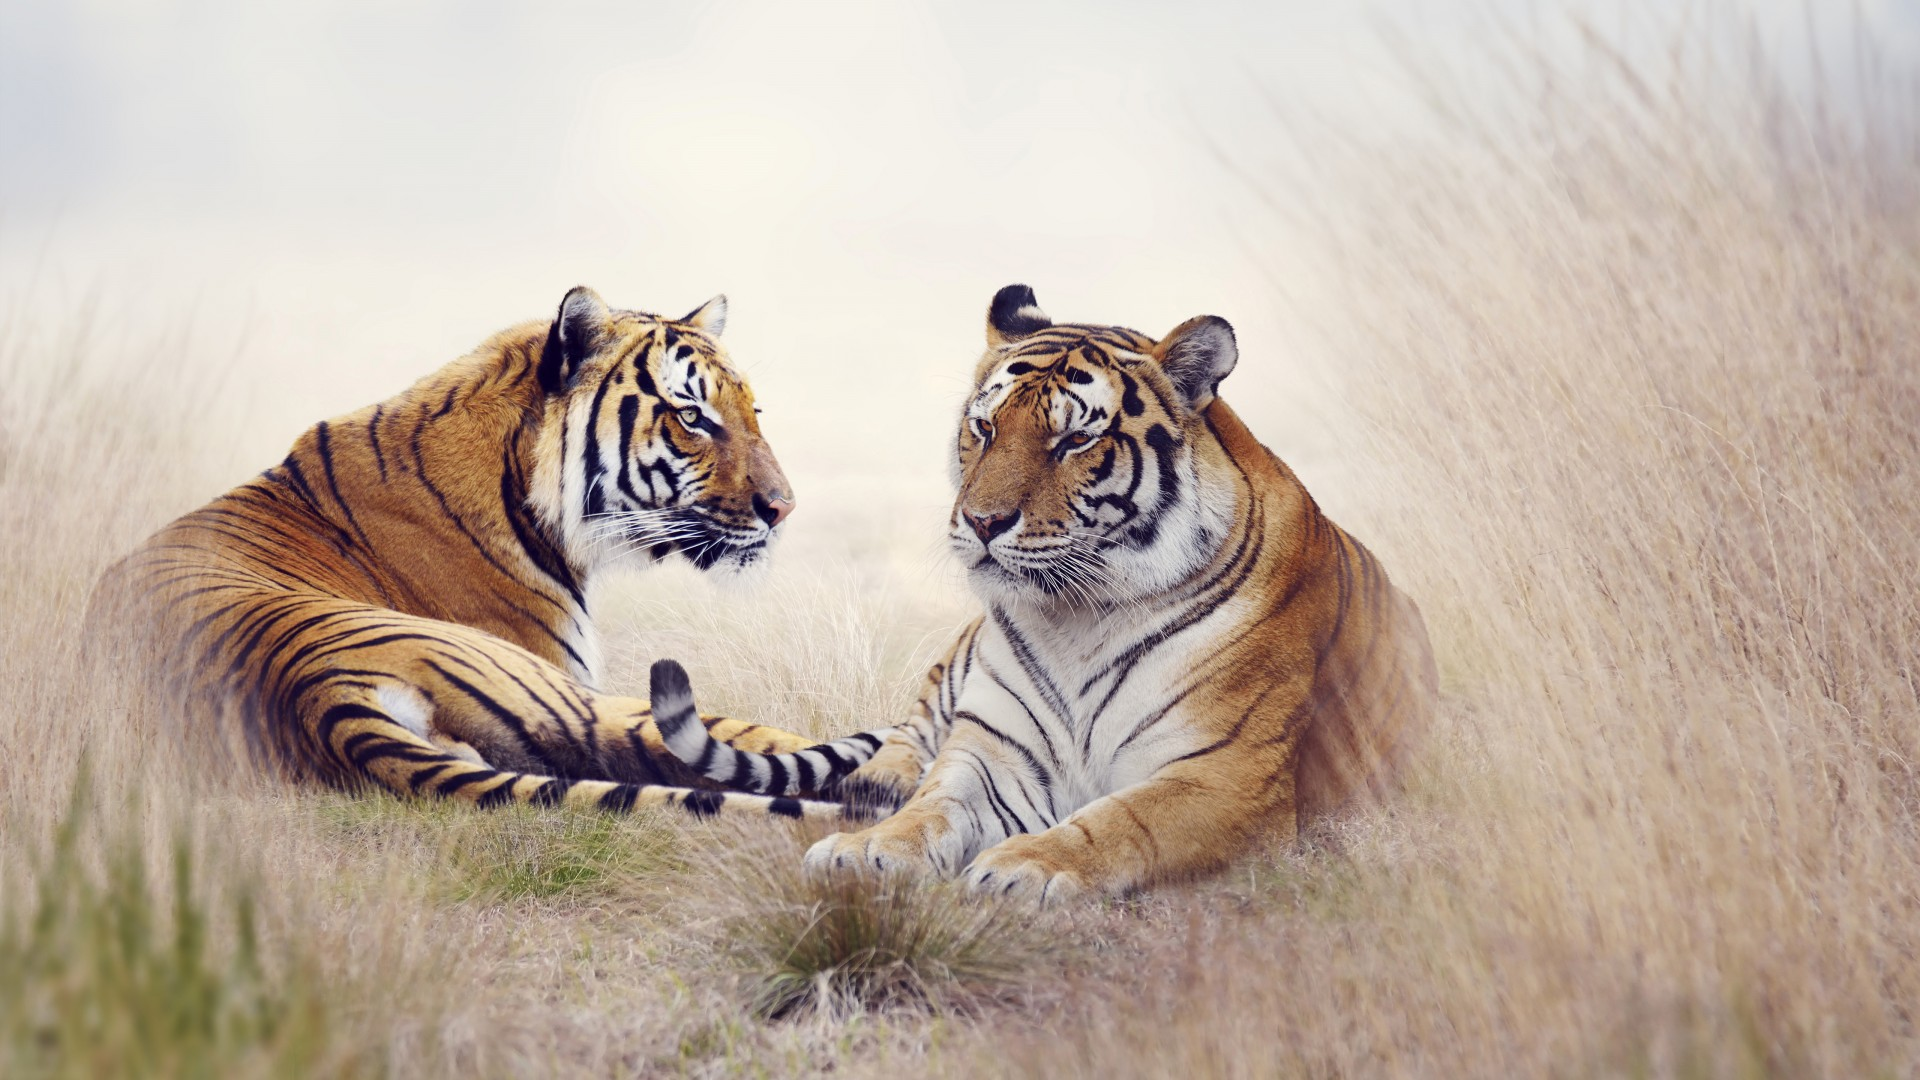 Iphone Wallpaper Cute Couple Tiger Pair 5k Wallpapers Hd Wallpapers Id 18449